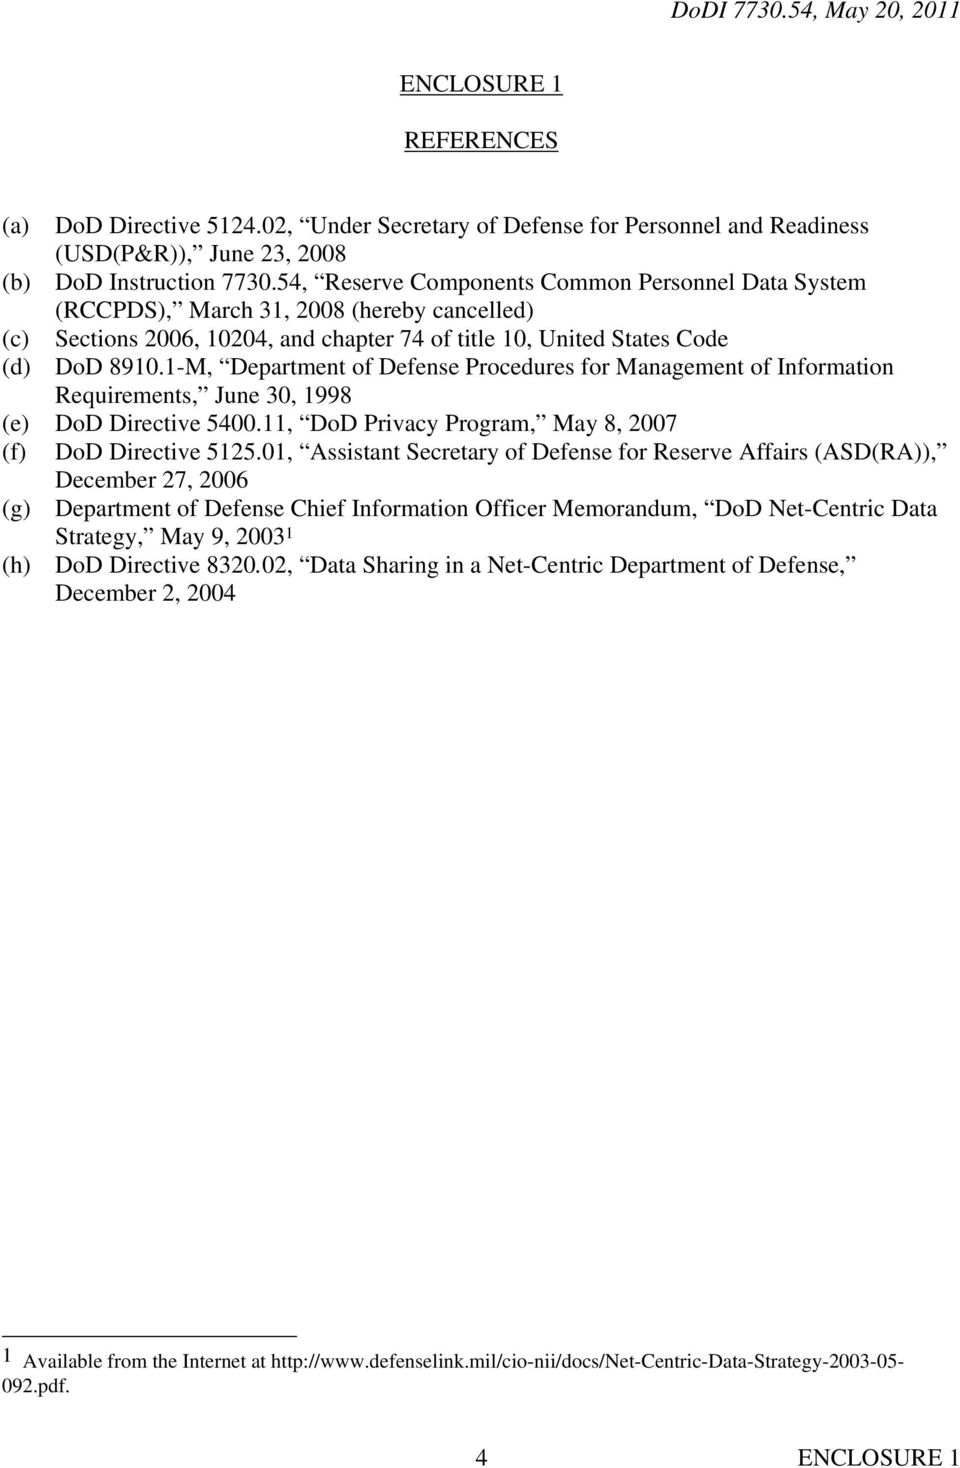 1-M, Department of Defense Procedures for Management of Information Requirements, June 30, 1998 (e) DoD Directive 5400.11, DoD Privacy Program, May 8, 2007 (f) DoD Directive 5125.